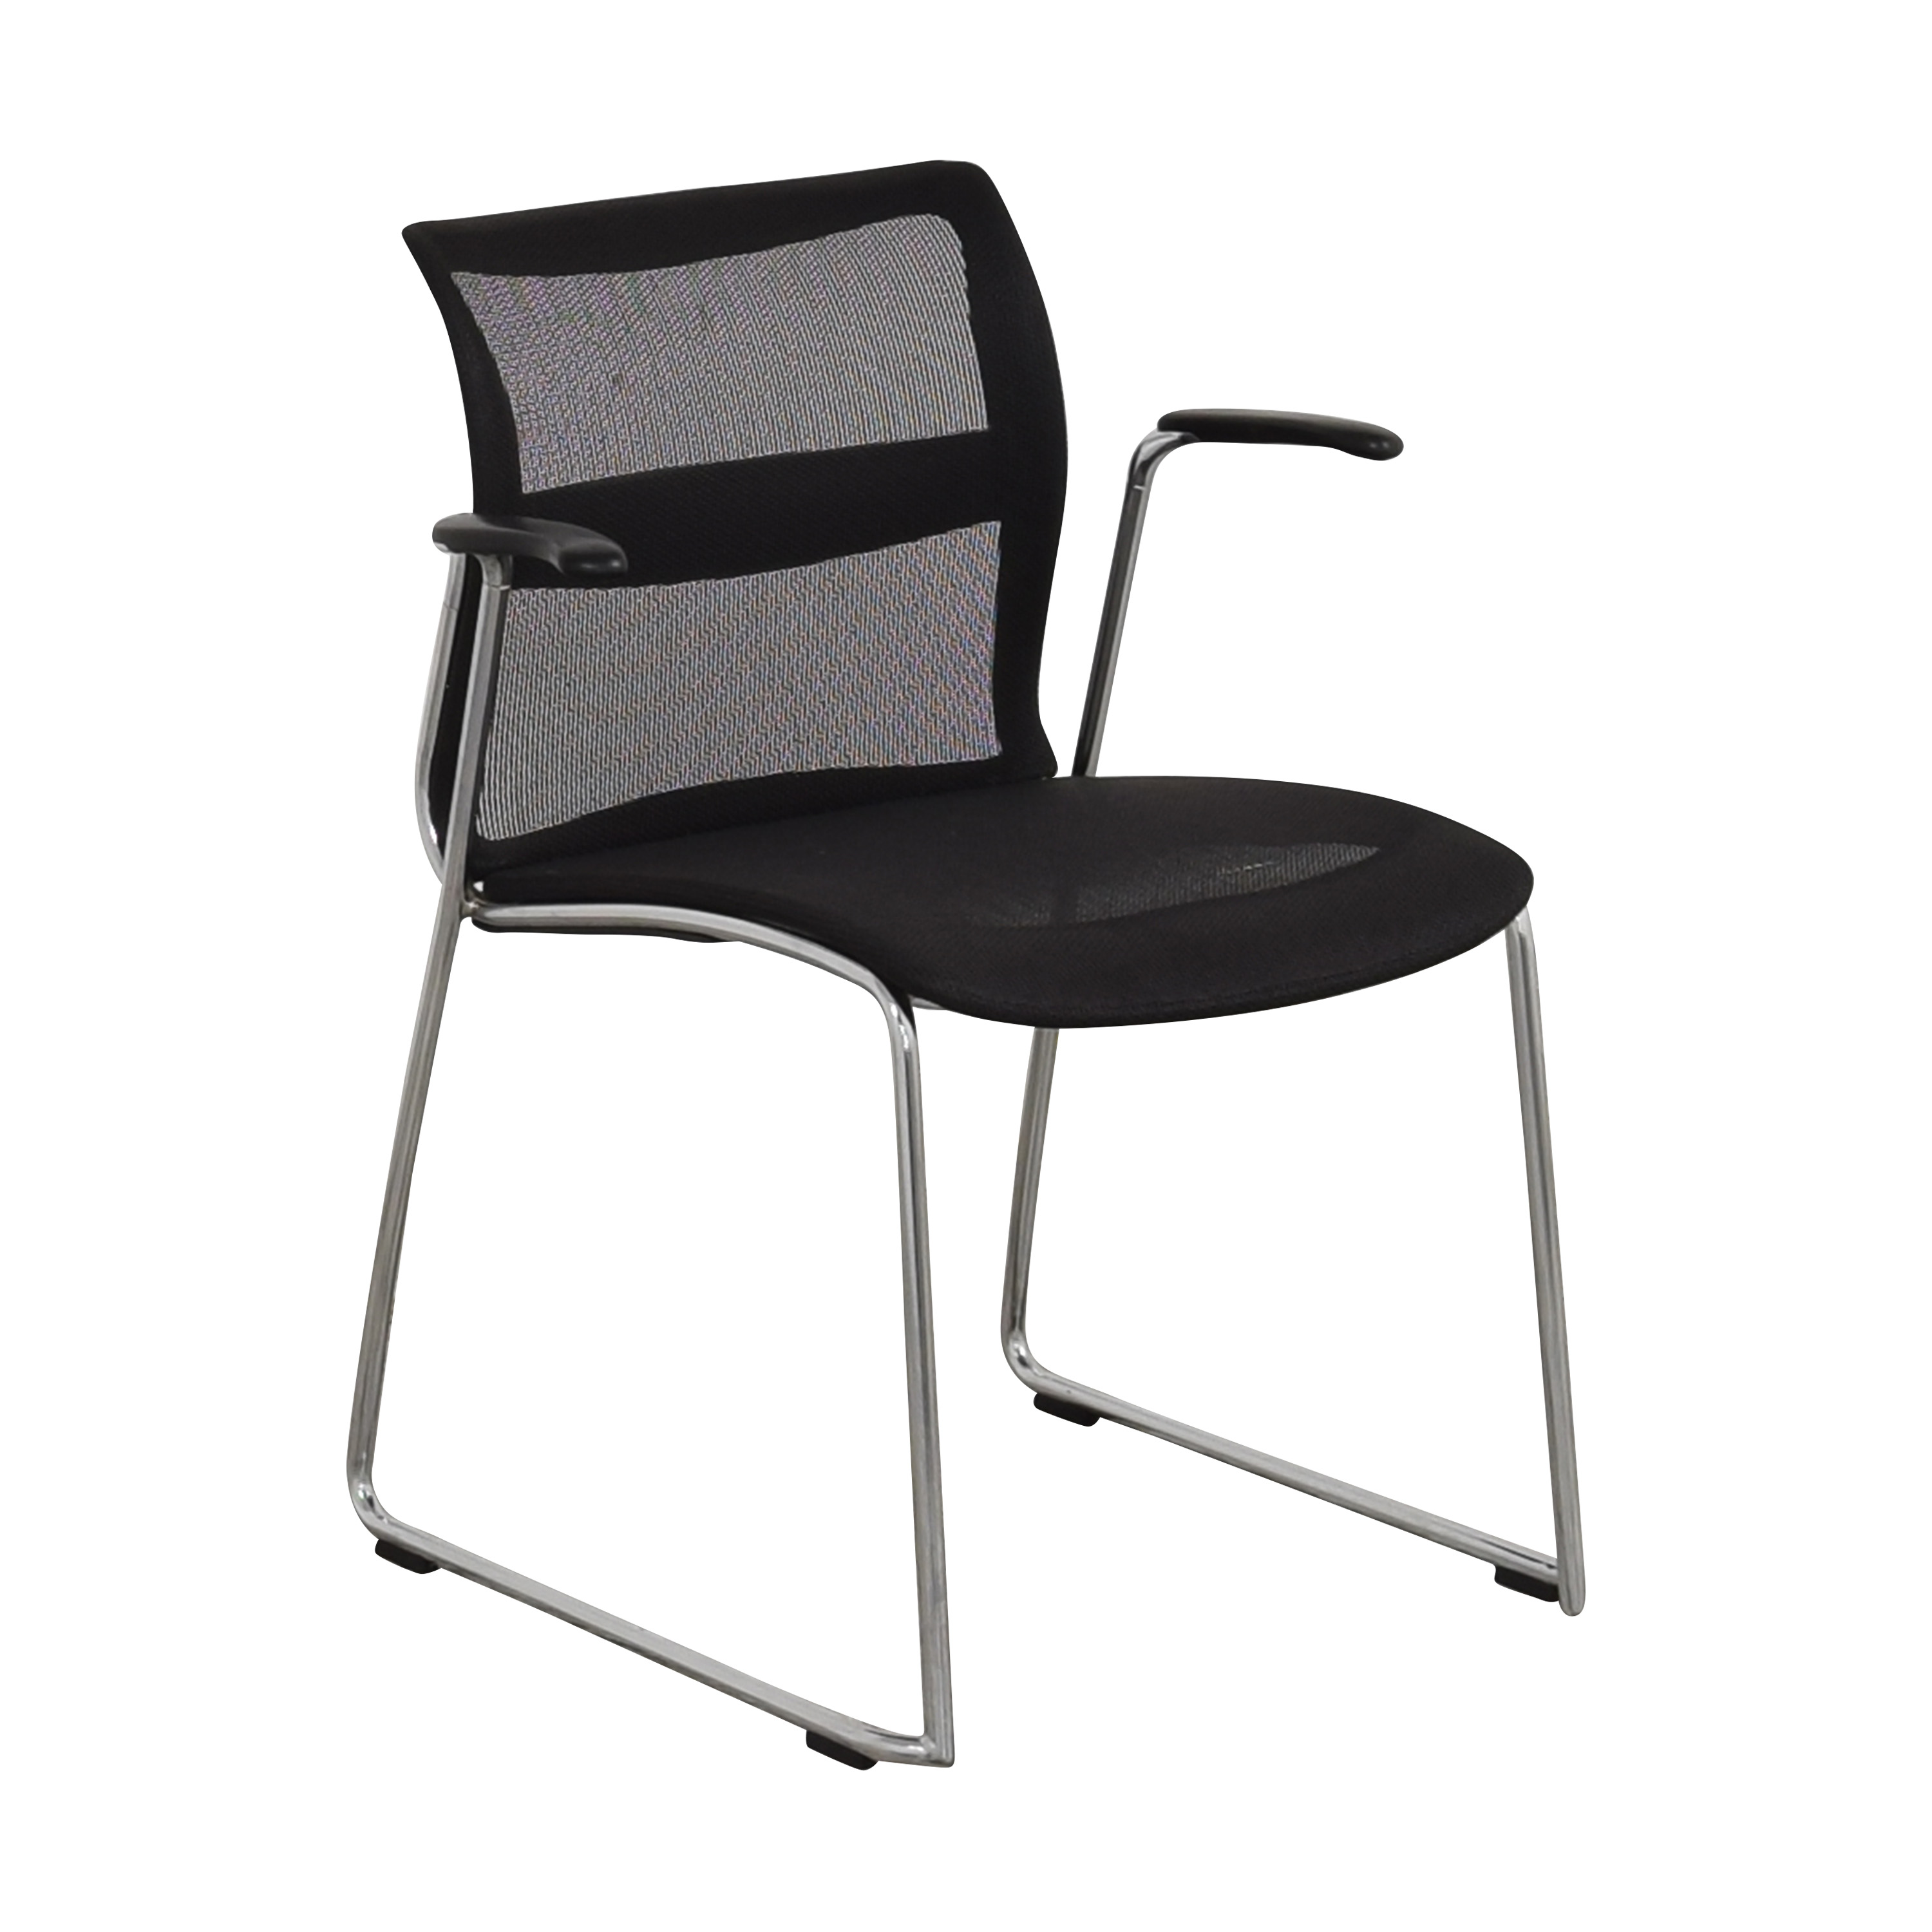 Stylex Stylex Zephyr Stacking Arm Chair for sale